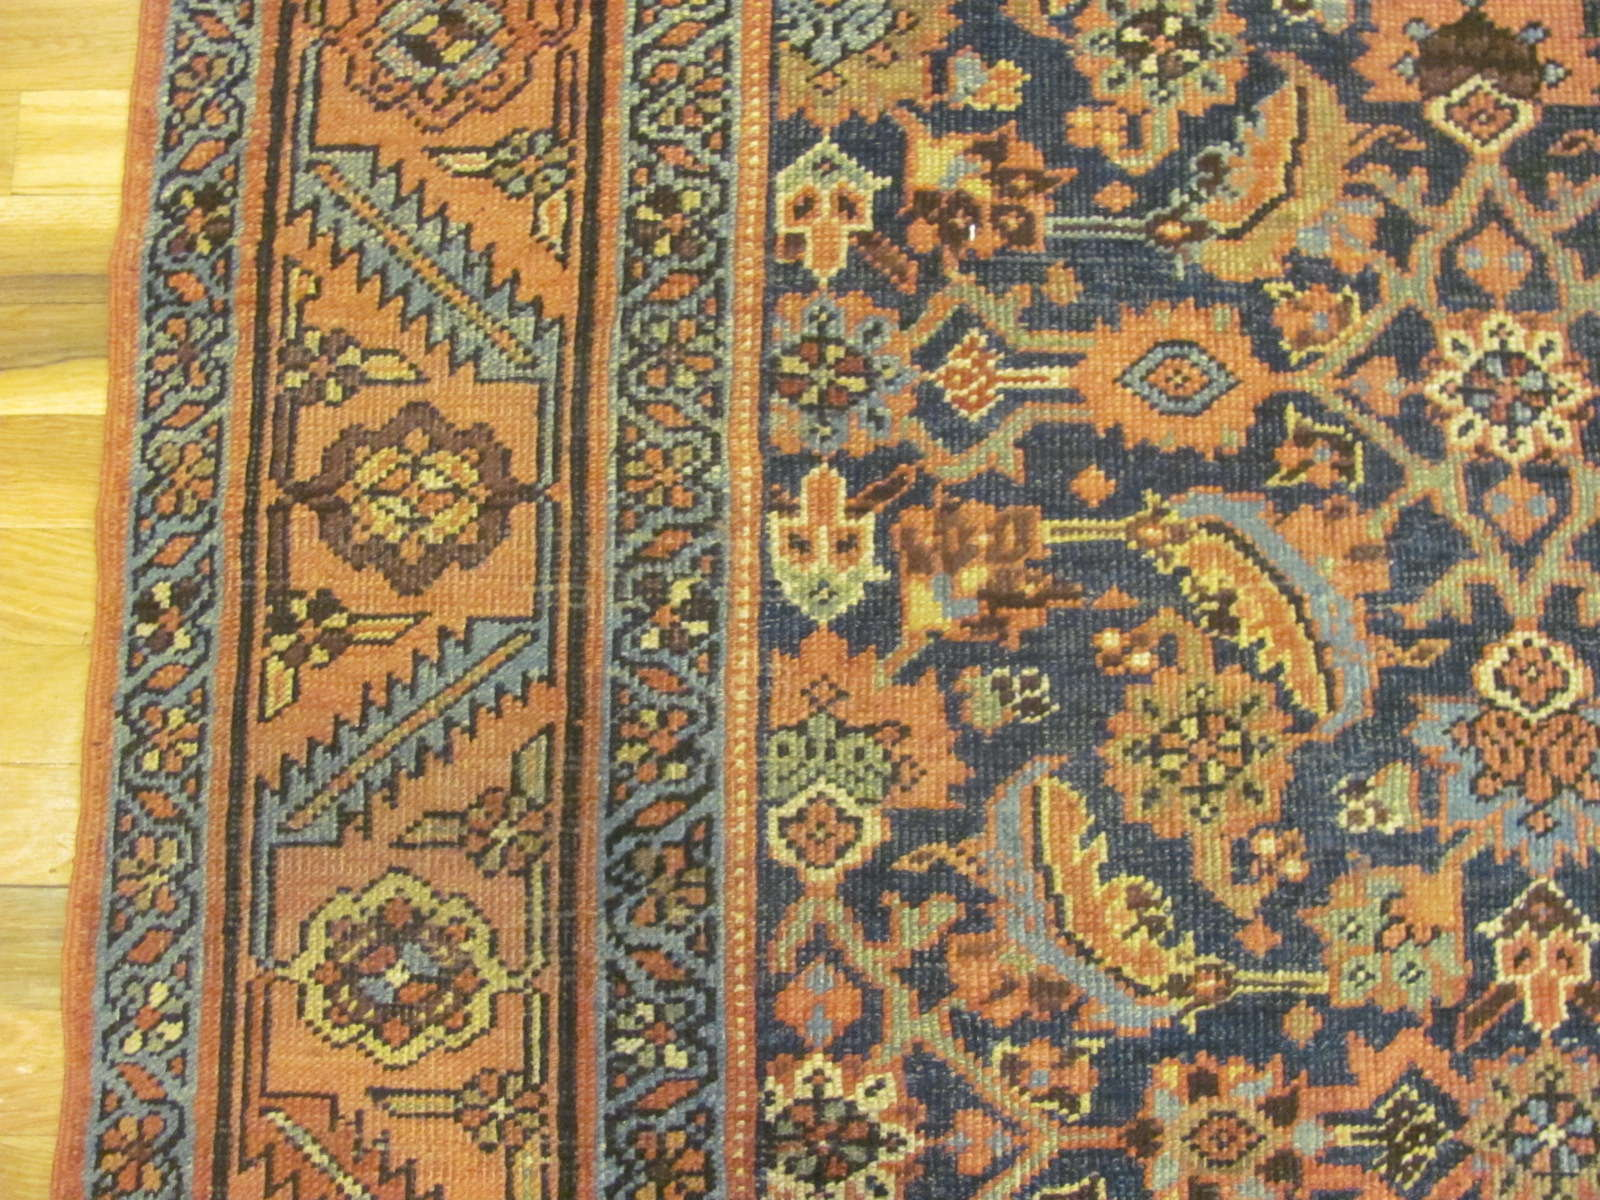 24614 antique persian heriz rug 4,8 x 6,5 -2